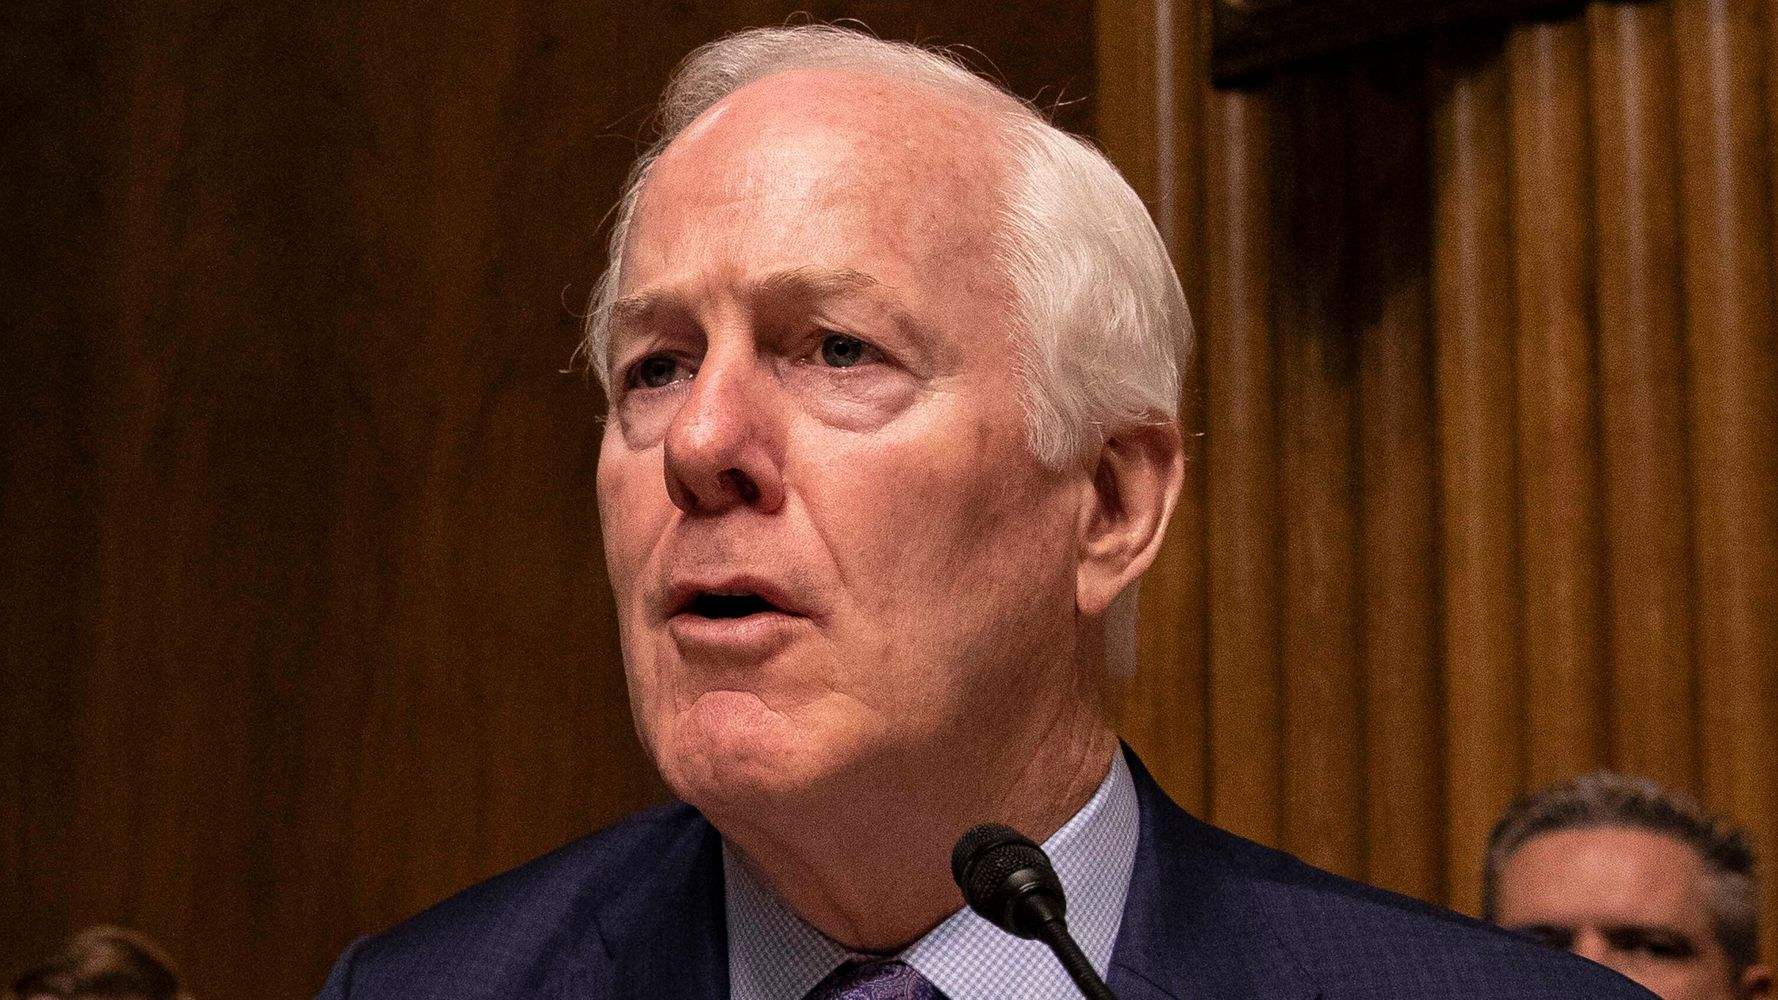 Westlake Legal Group 5d57a93e3b0000a912dce889 GOP Senator John Cornyn Torched Over 'Dumbest' Climate Change Explainer